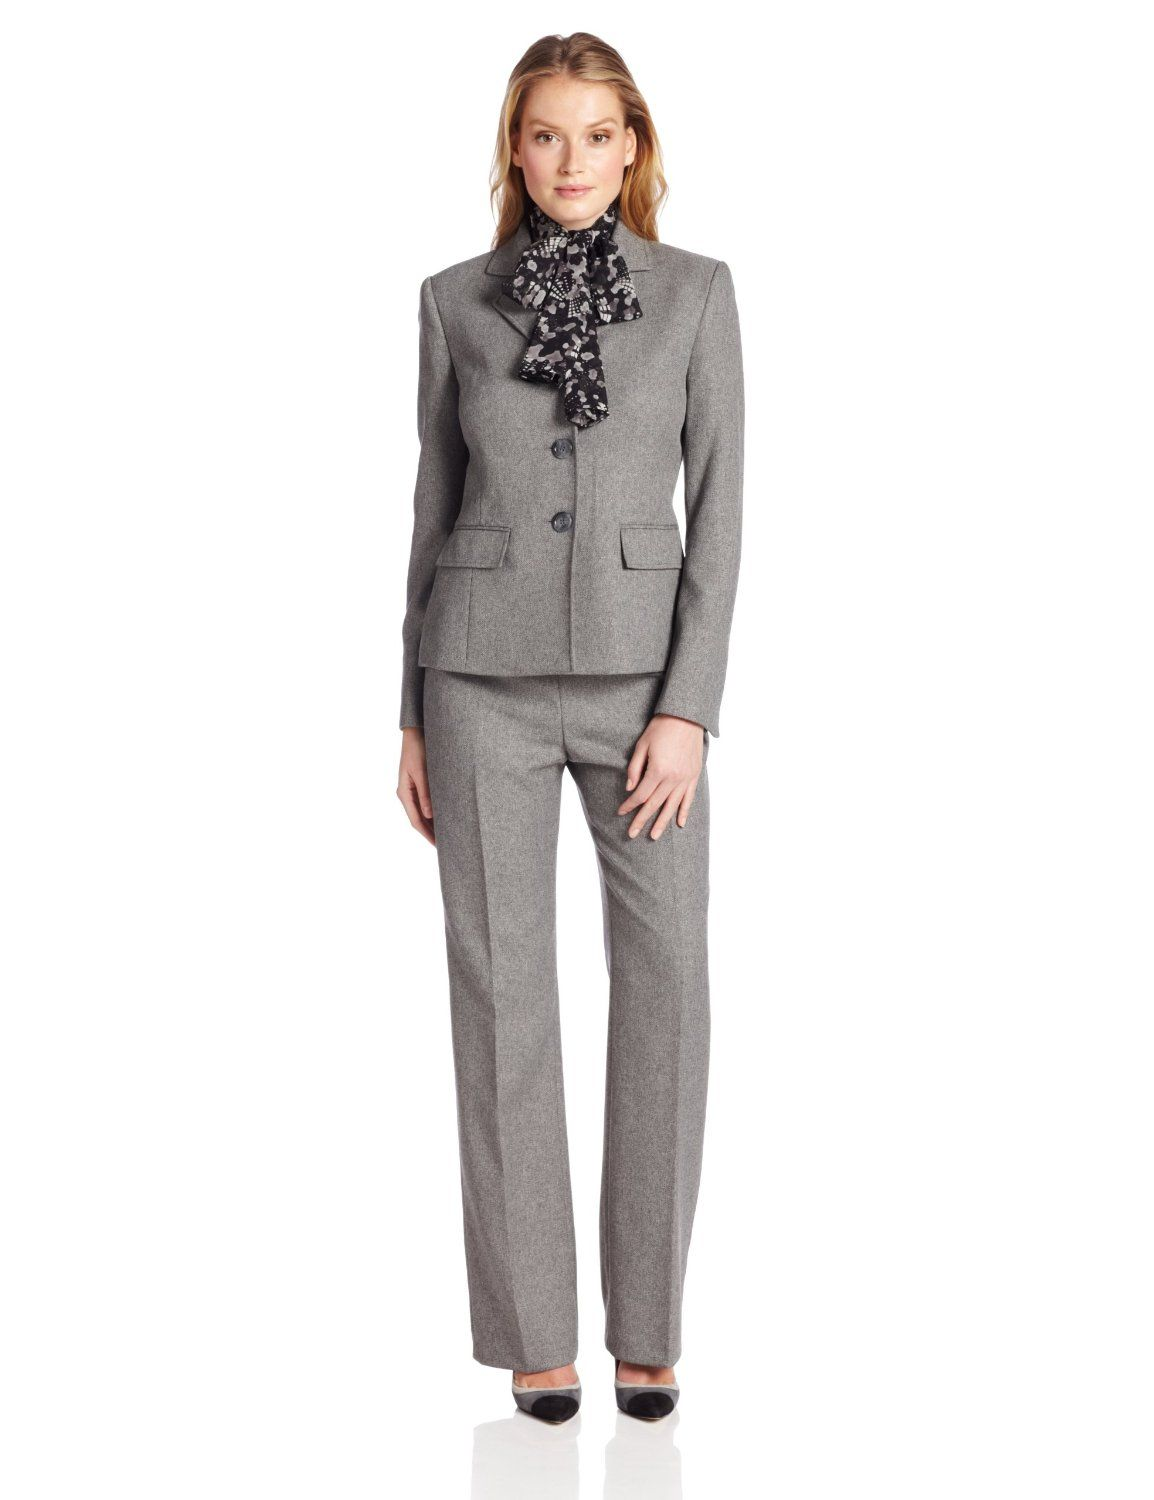 1cbc928f7f4cf Le Suit Women s 3 Button Herringbone Notch Collar Jacket with Pant and  Scarf Suit Set ( 90.00)